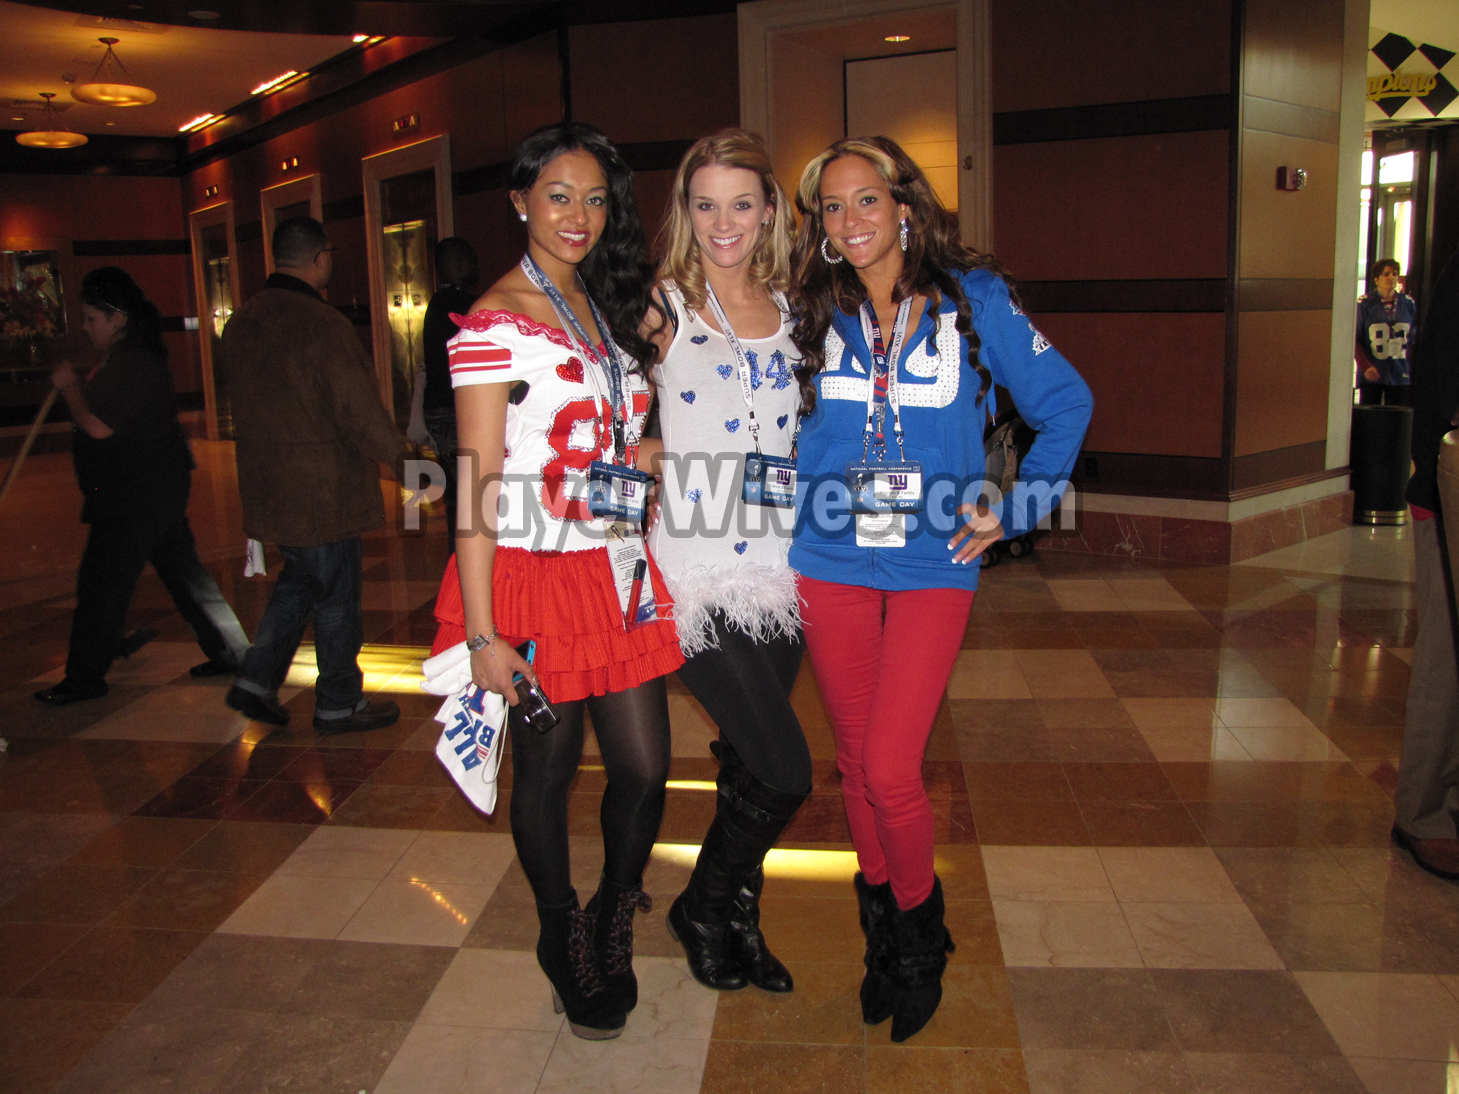 Ahmad Bradshaw's girlfriend Jessica Marcus: The PlayerWives.com Interview